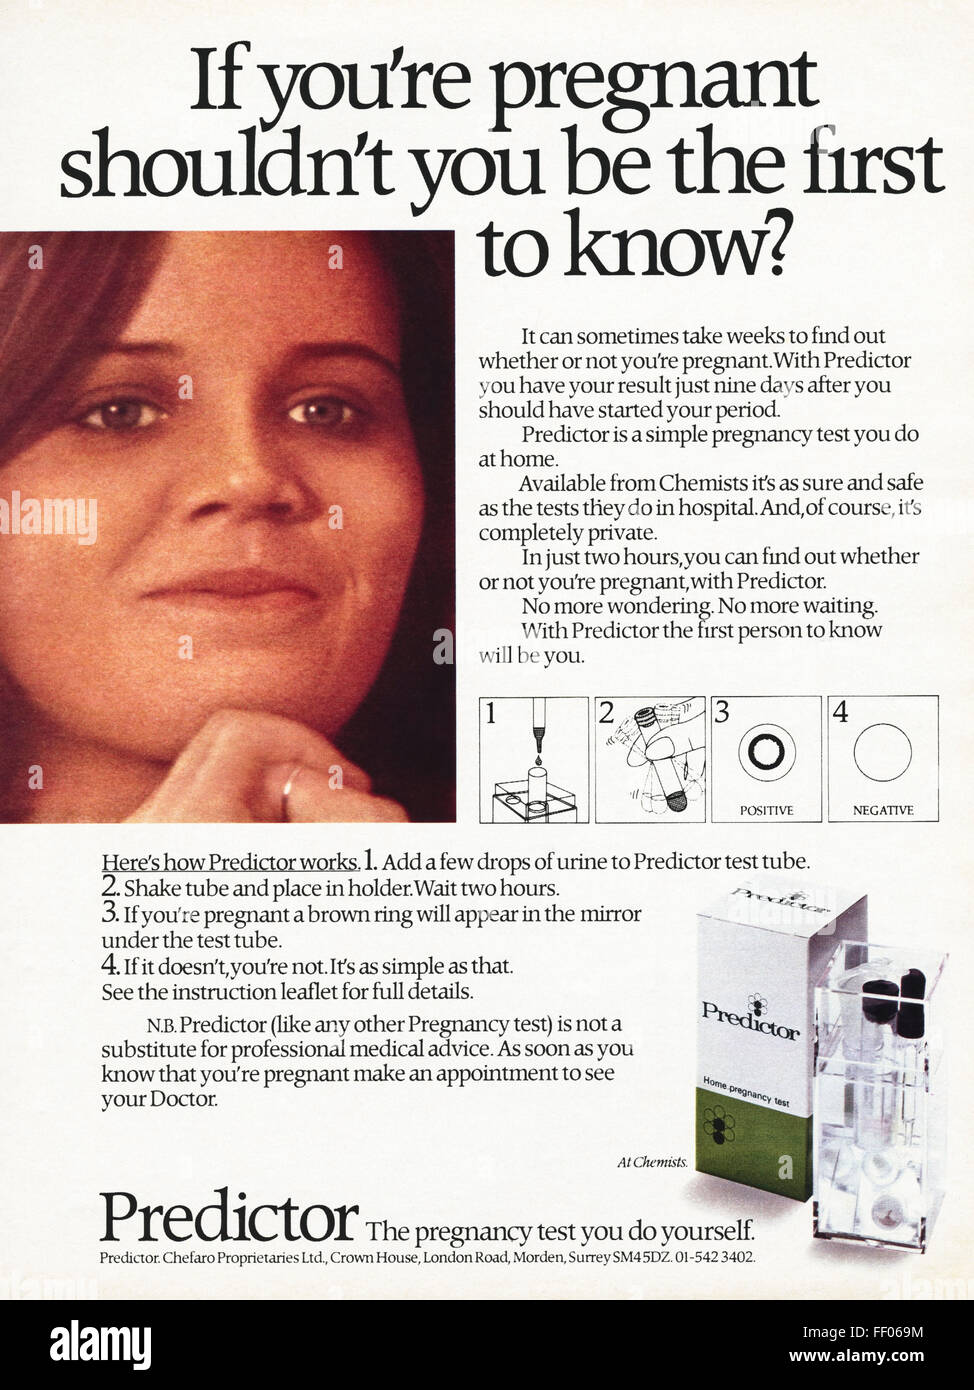 Original full page colour vintage advert from 1970s. Advertisement dated 1978 advertising Predictor pregnancy test - Stock Image